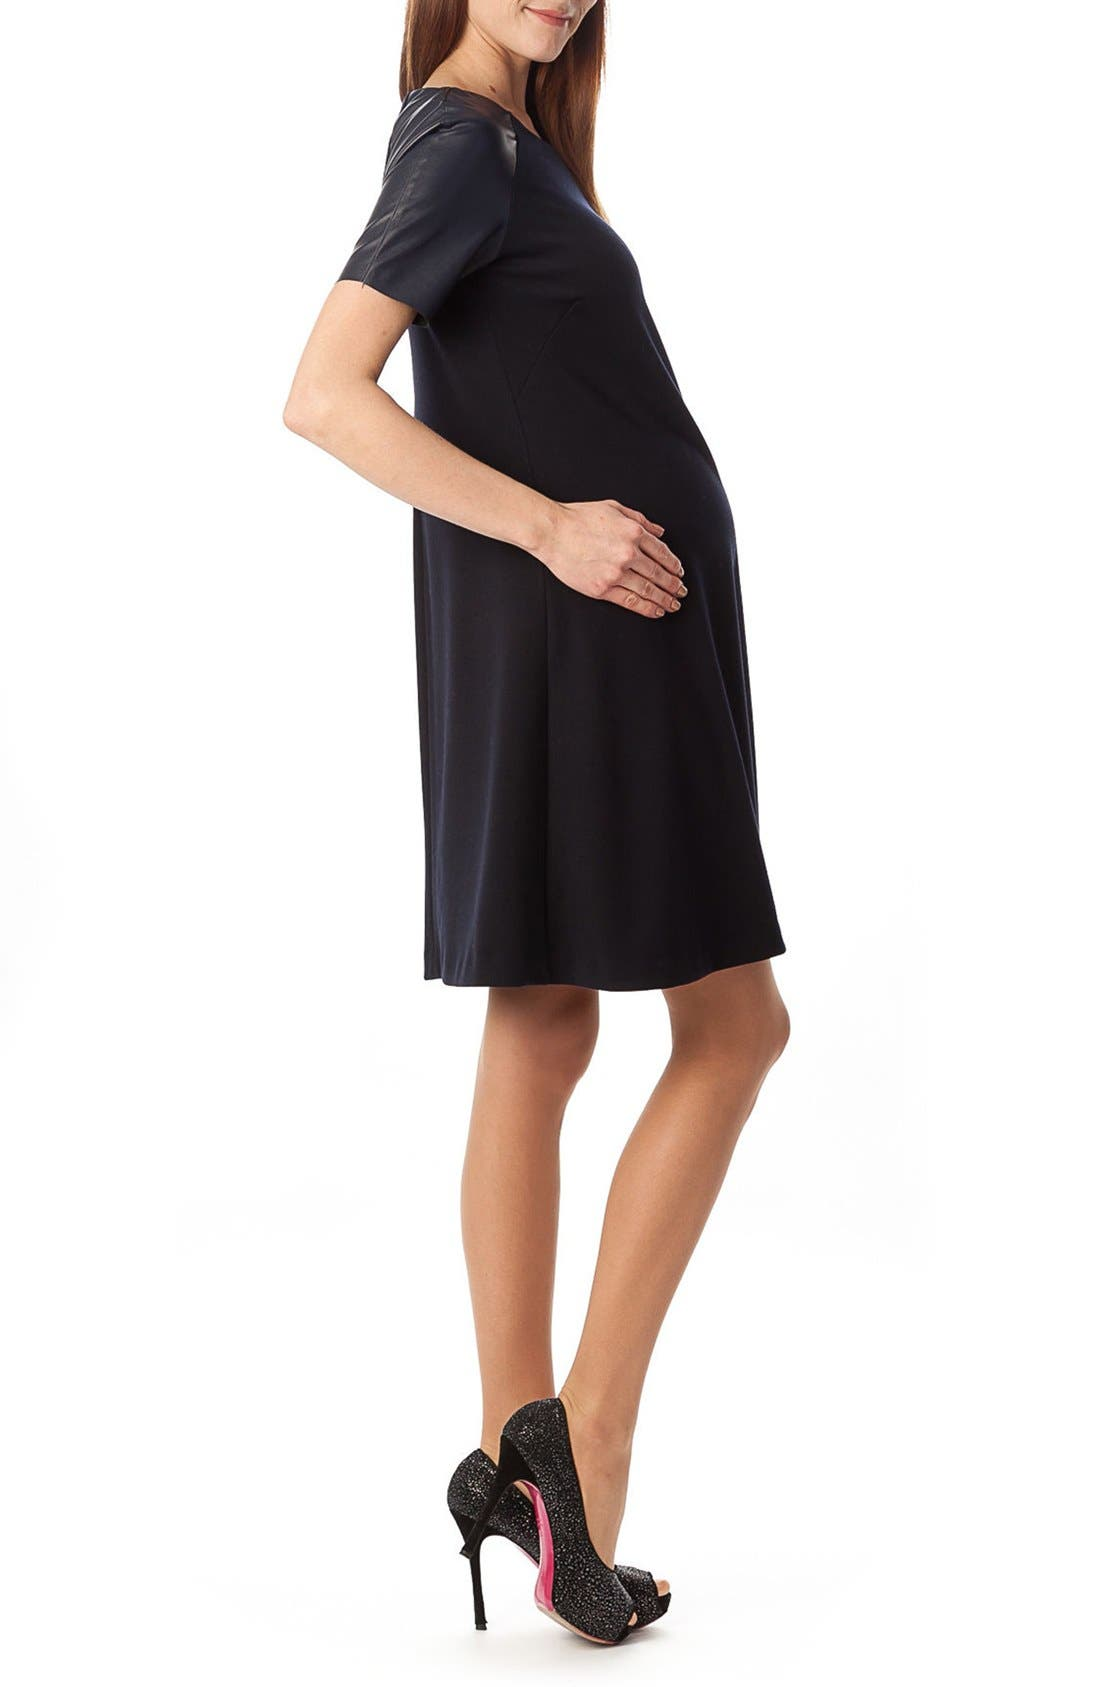 'Knightsbridge' A Line Maternity Dress,                             Alternate thumbnail 3, color,                             410